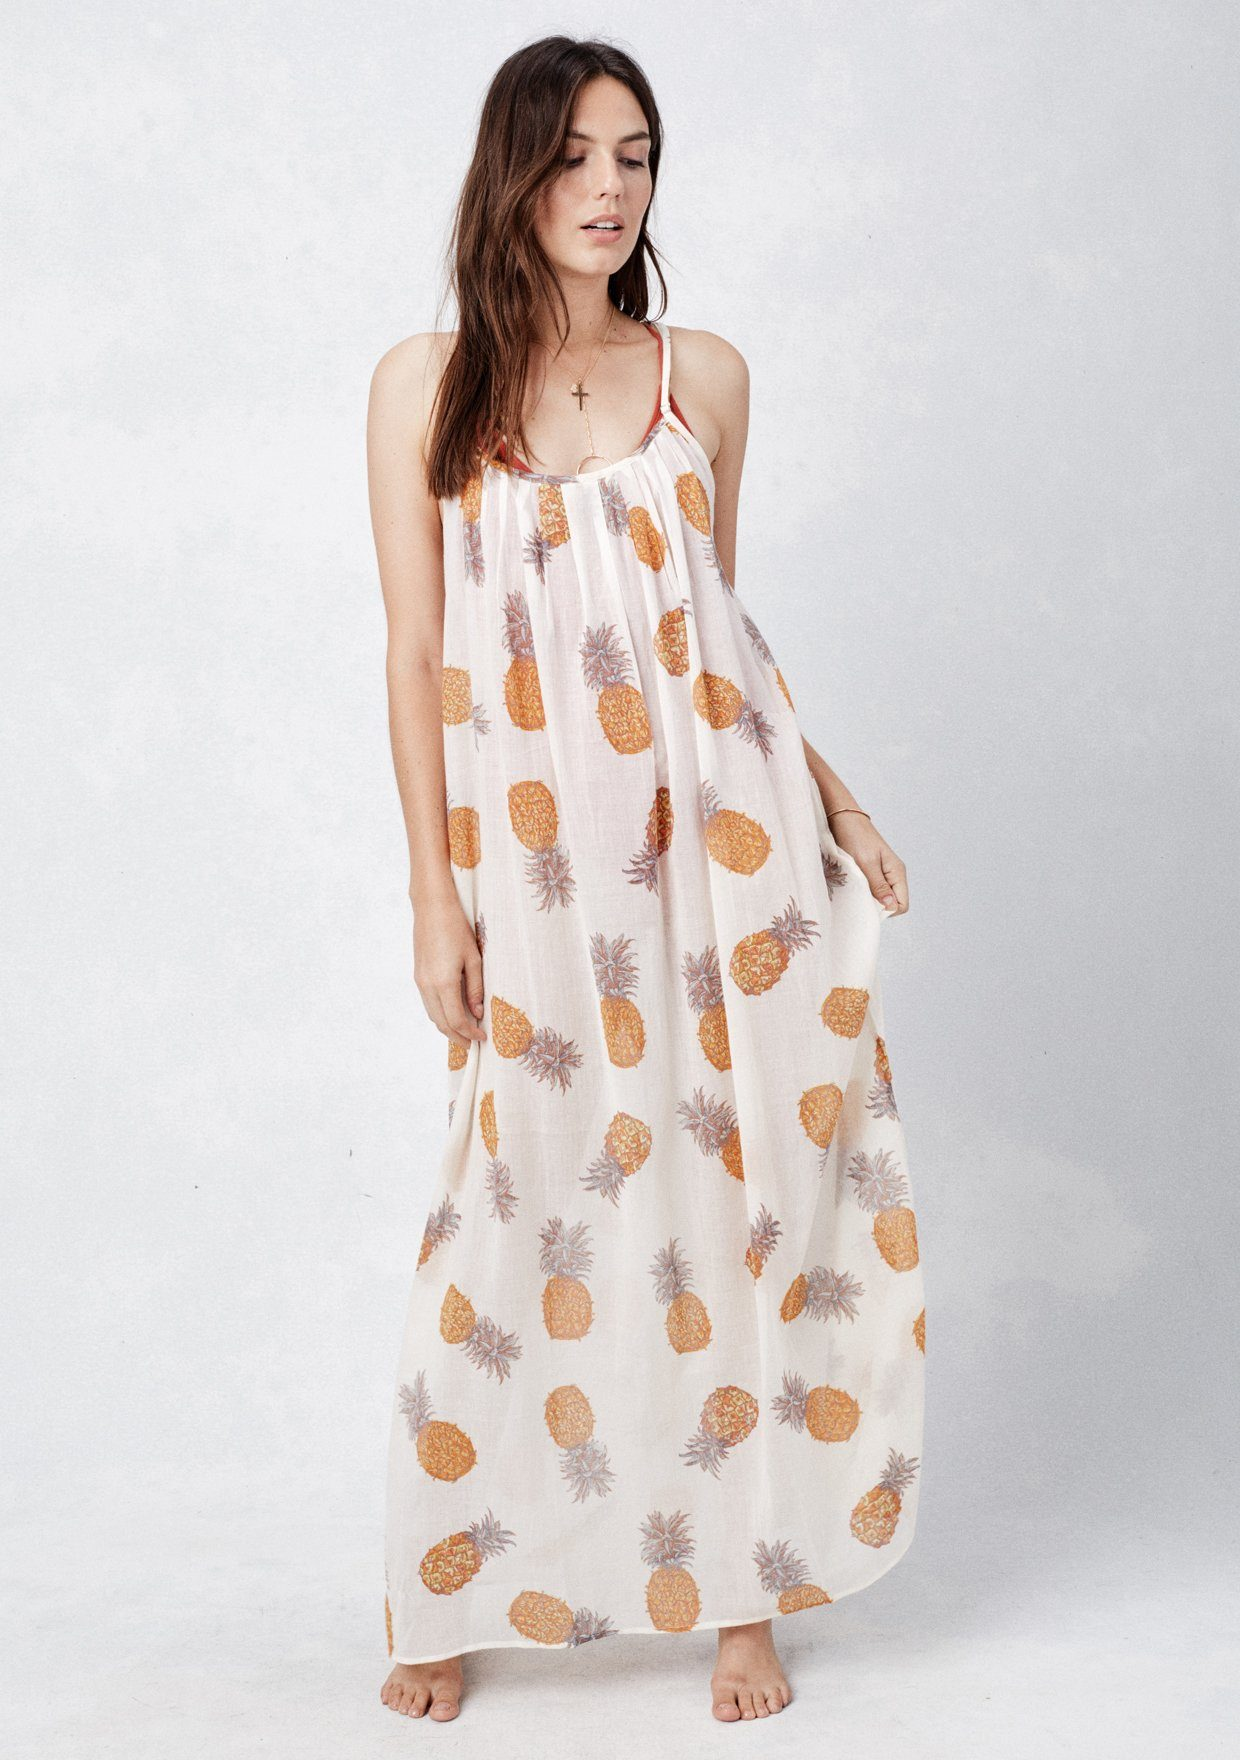 Shop for trendy fashion beach dresses for women online at JustFashionNow. Find the newest styles of beach dresses with affordable prices.